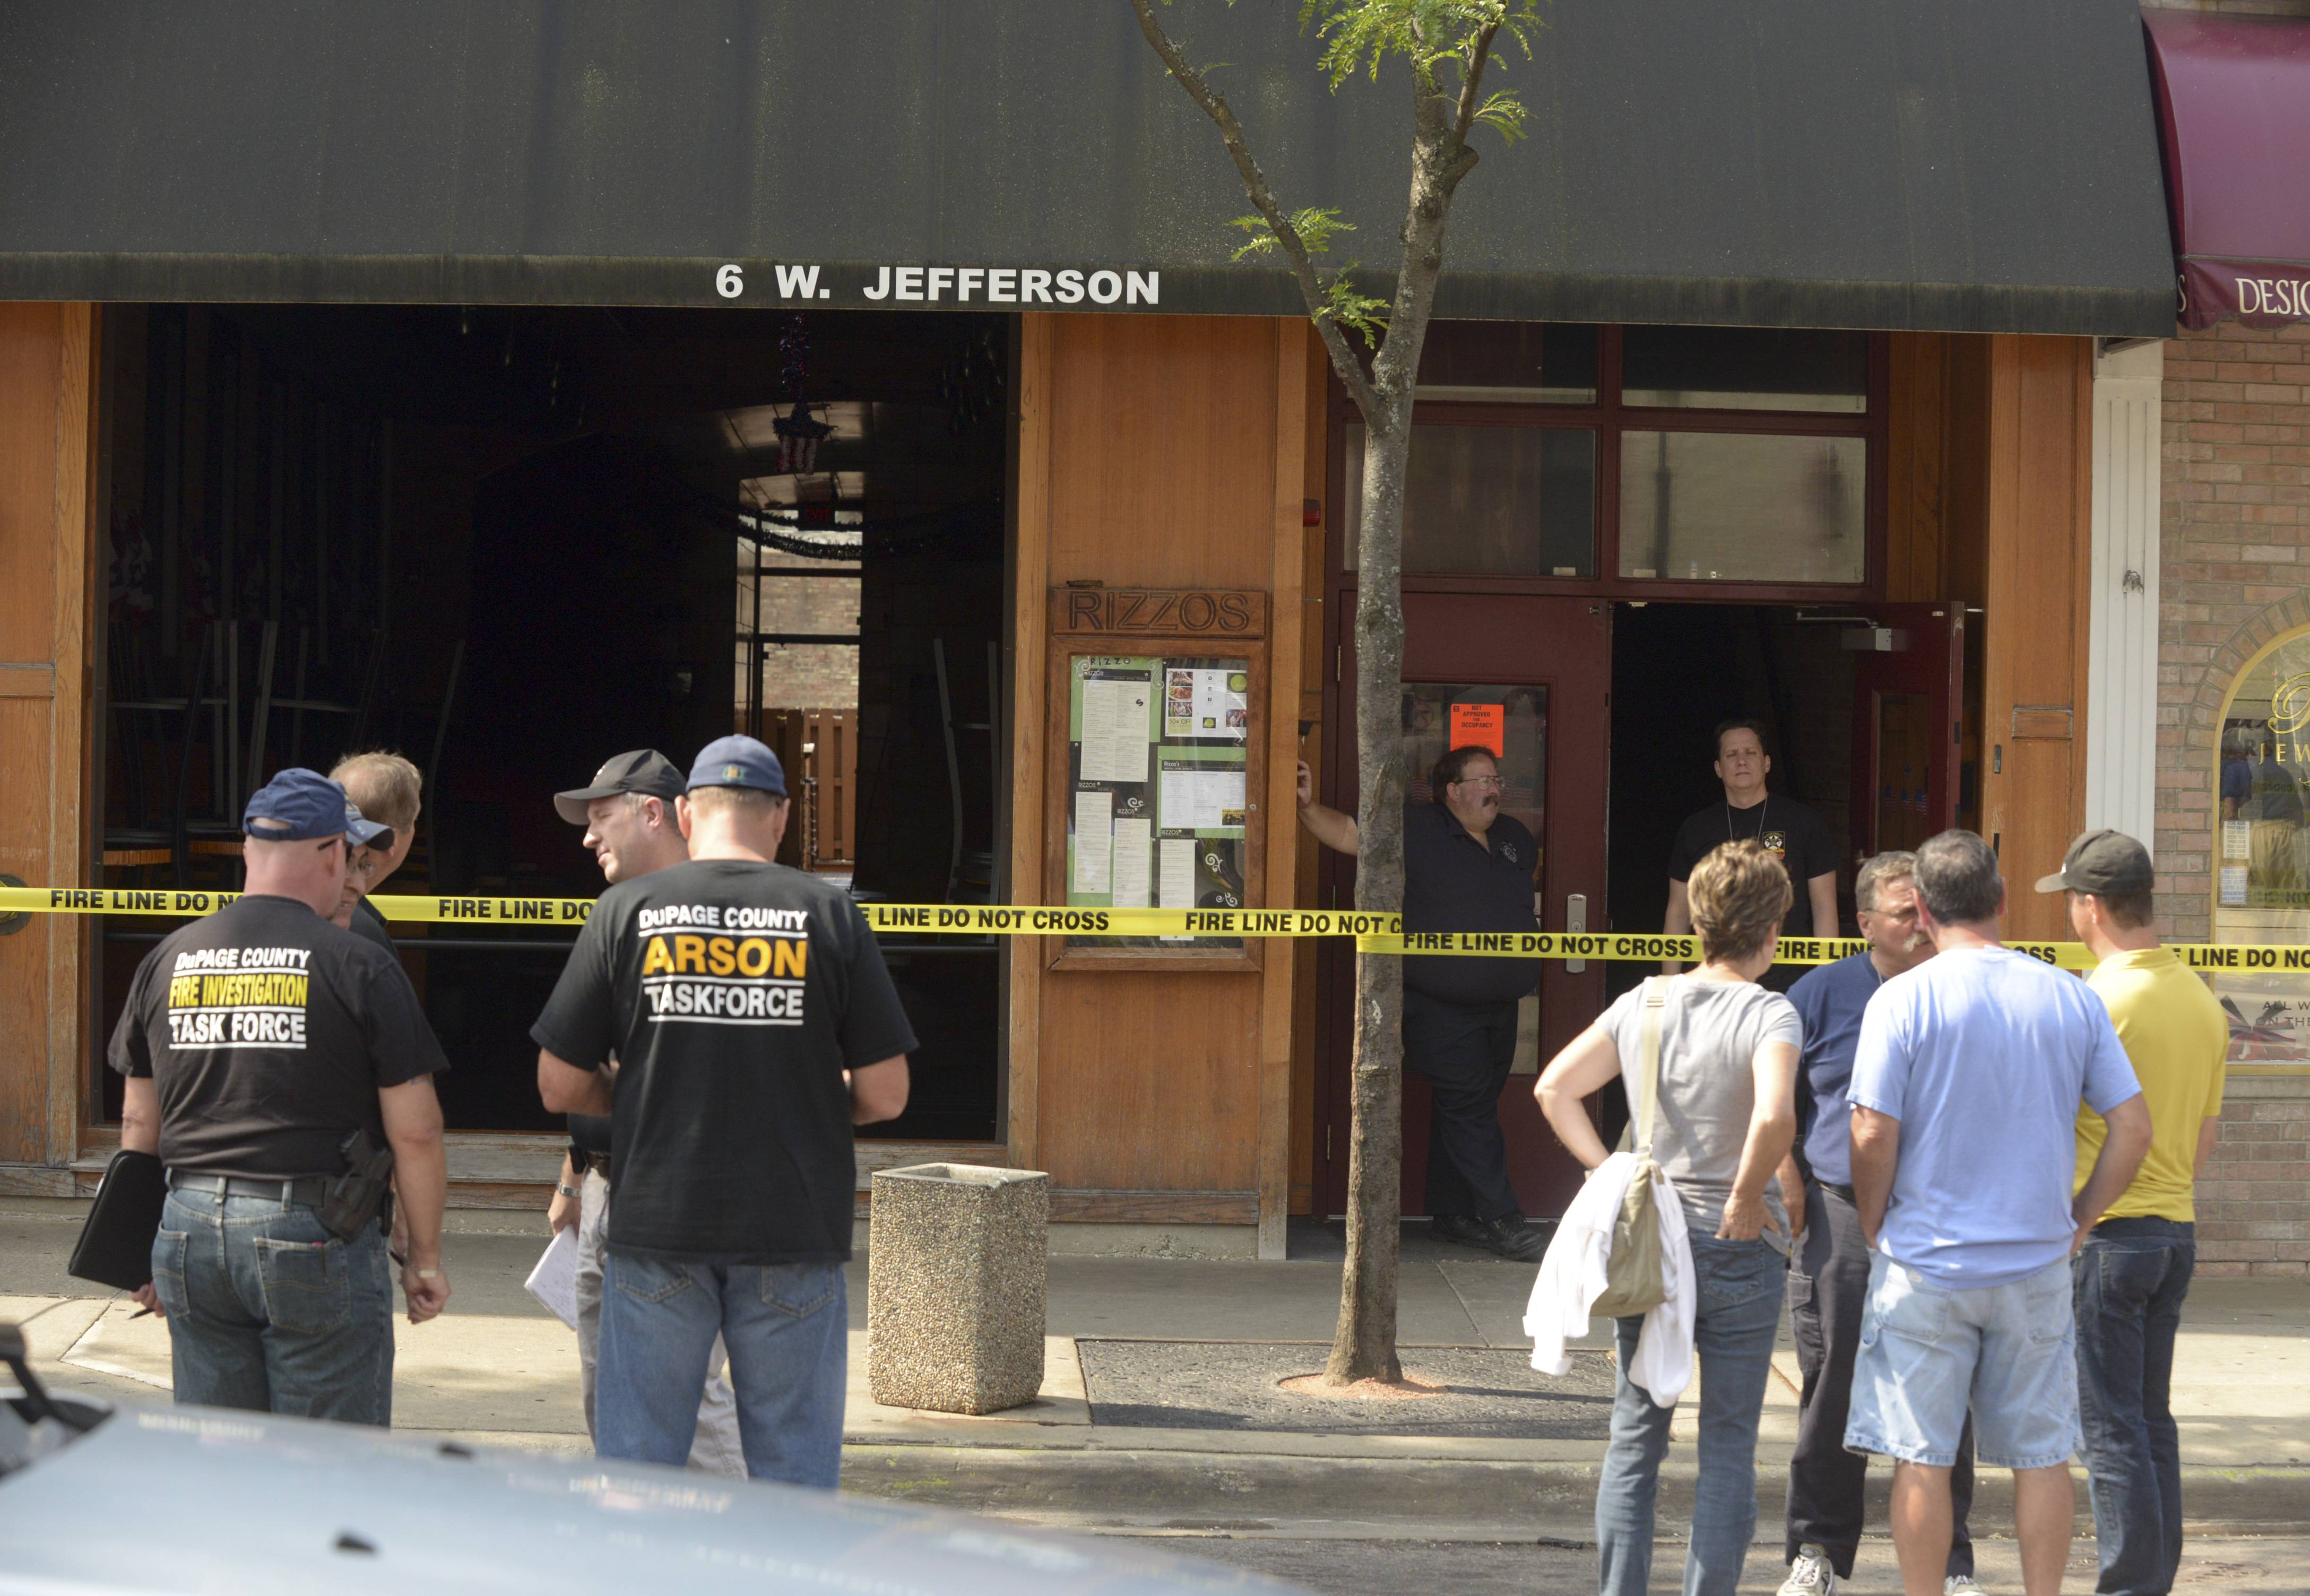 Investigators look over the scene of a fire Sunday morning that caused extensive damage to a restaurant at 6 W. Jefferson Ave. in downtown Naperville. The fire left the business uninhabitable, authorities said.